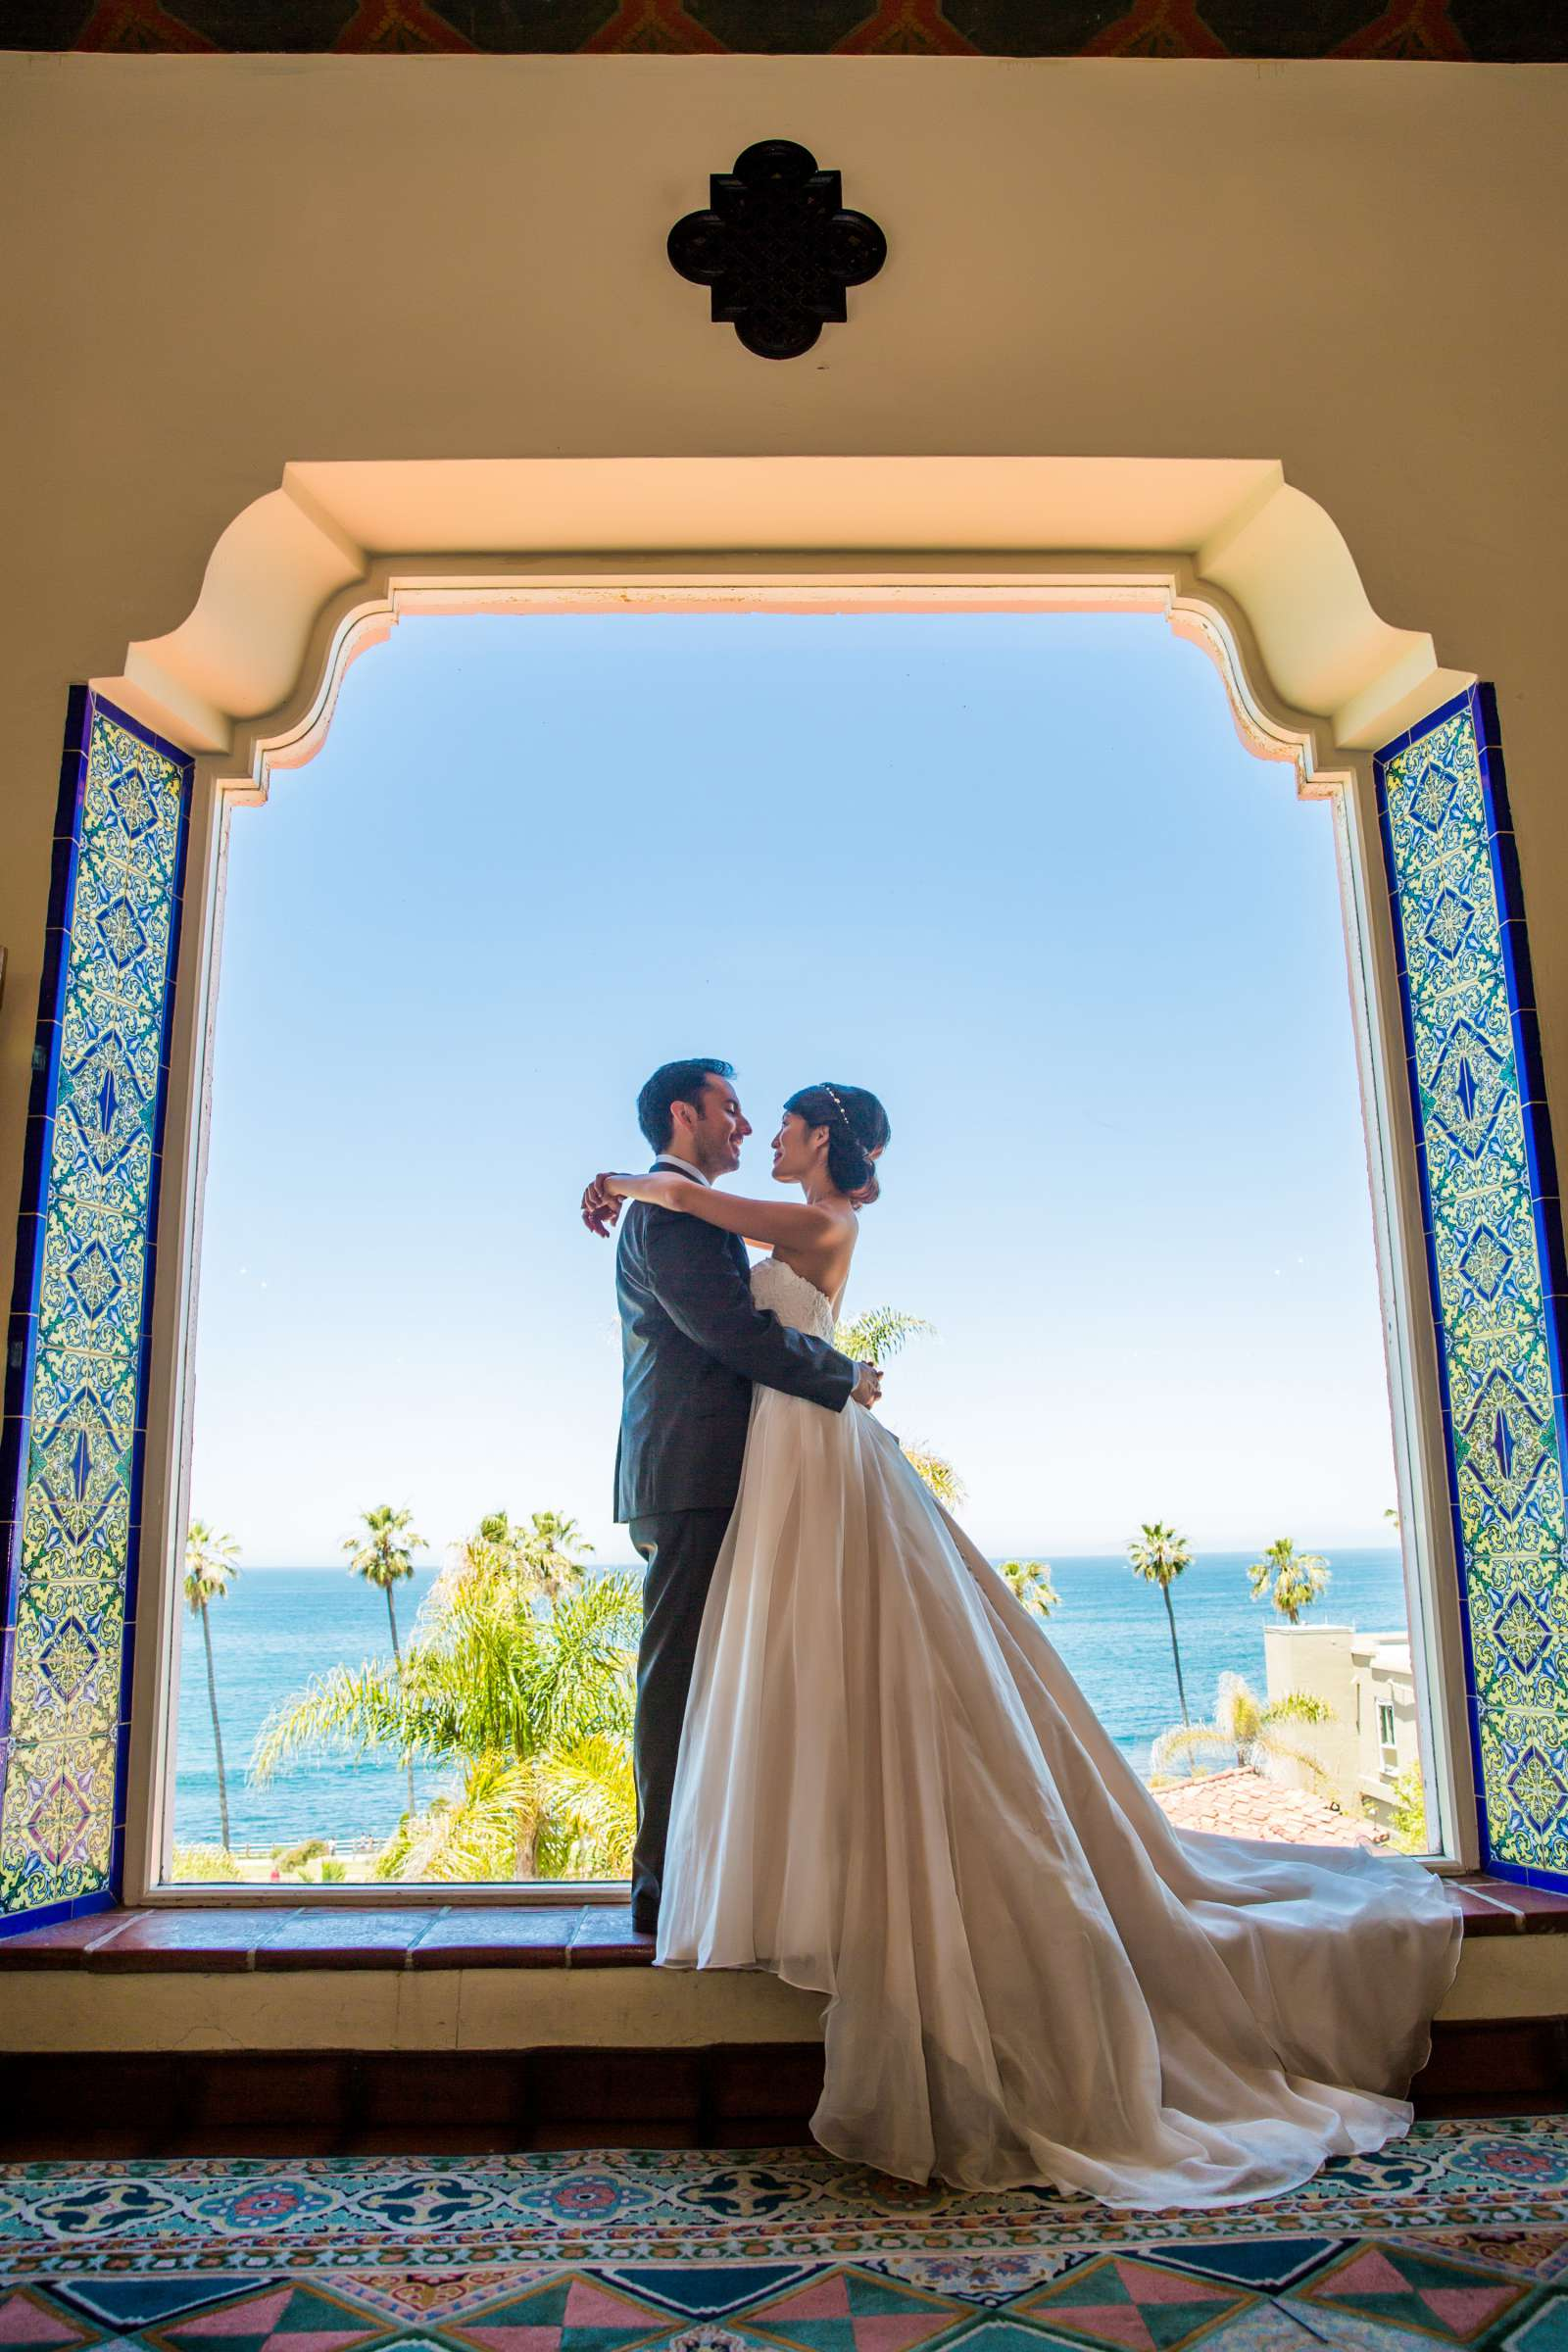 La Valencia Wedding, Karen and Anthony Wedding Photo #369720 by True Photography